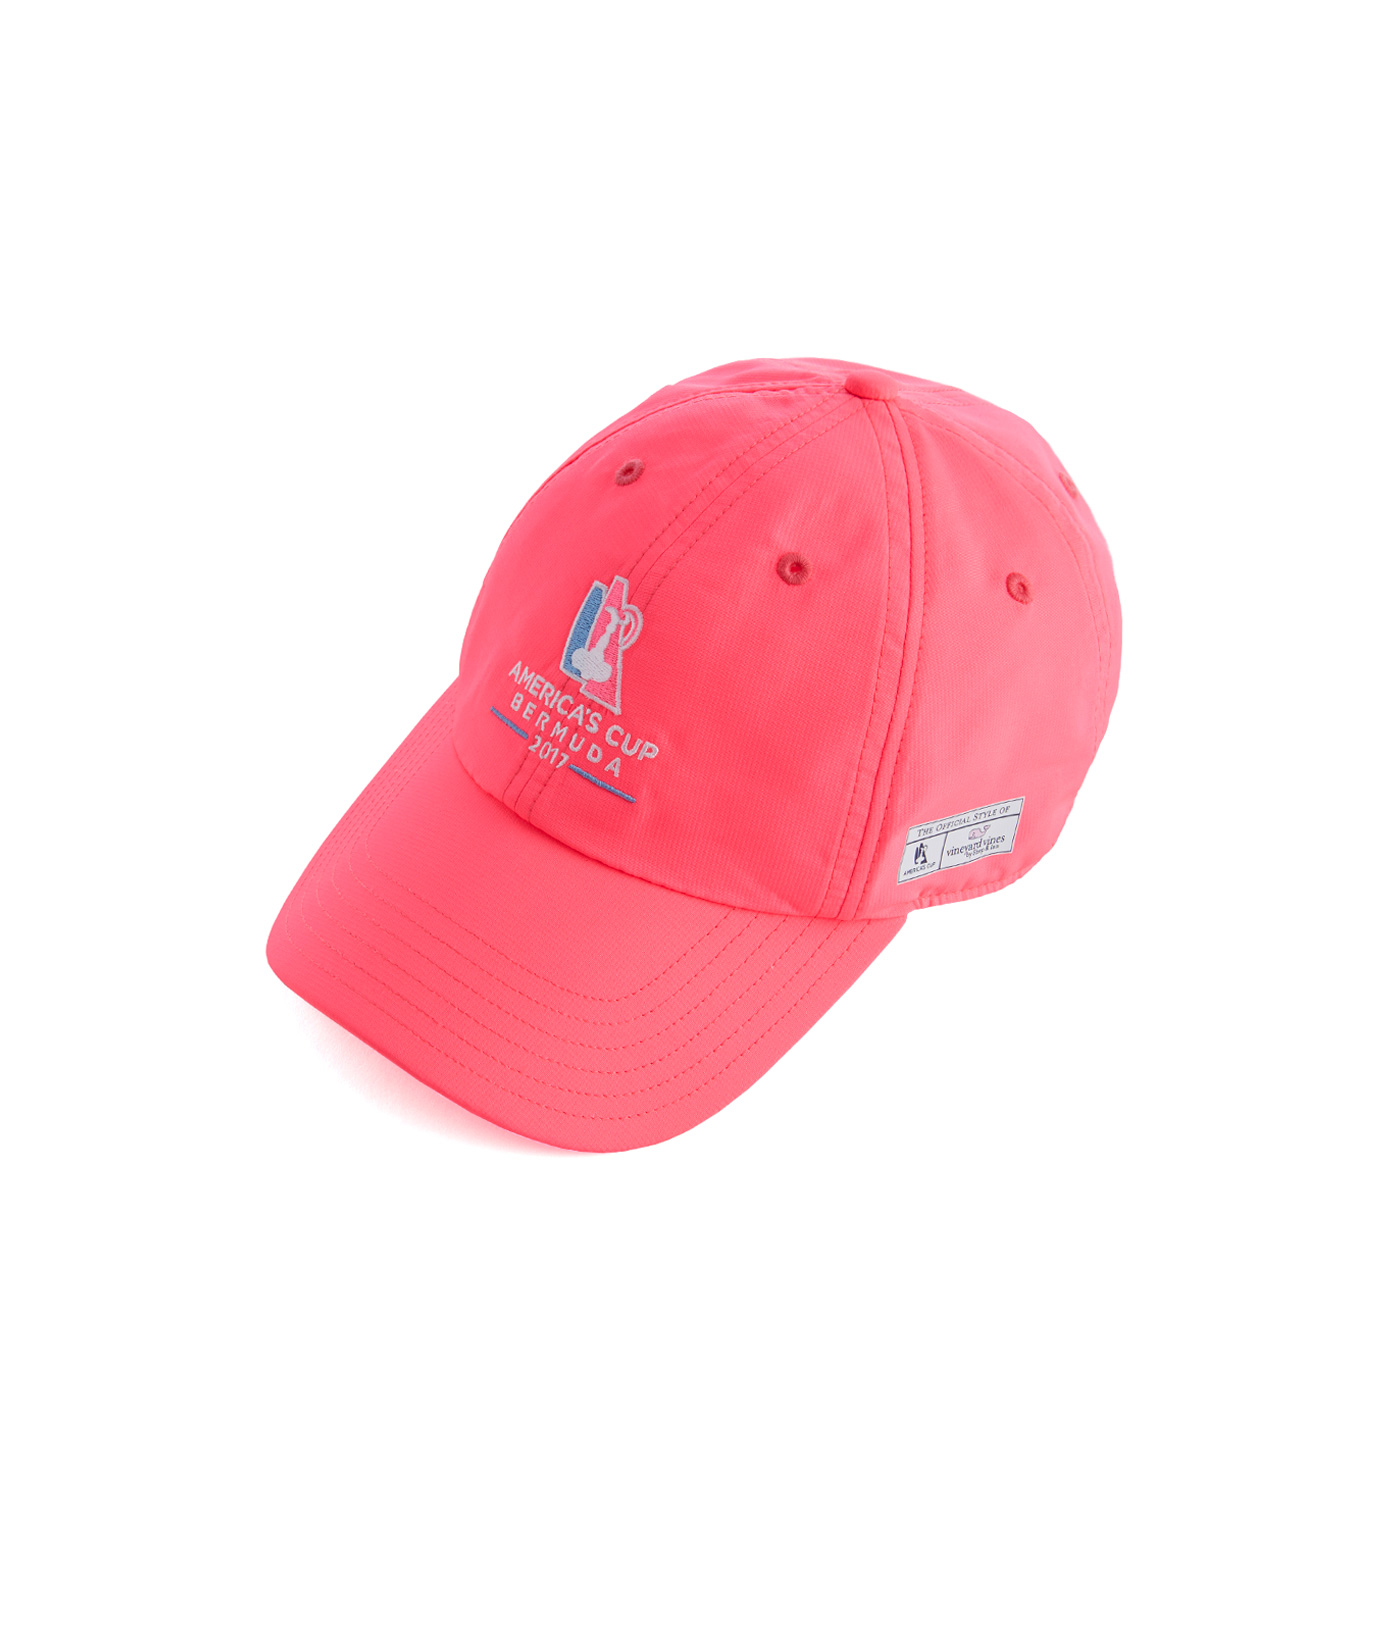 shop womens america s cup performance baseball hat at